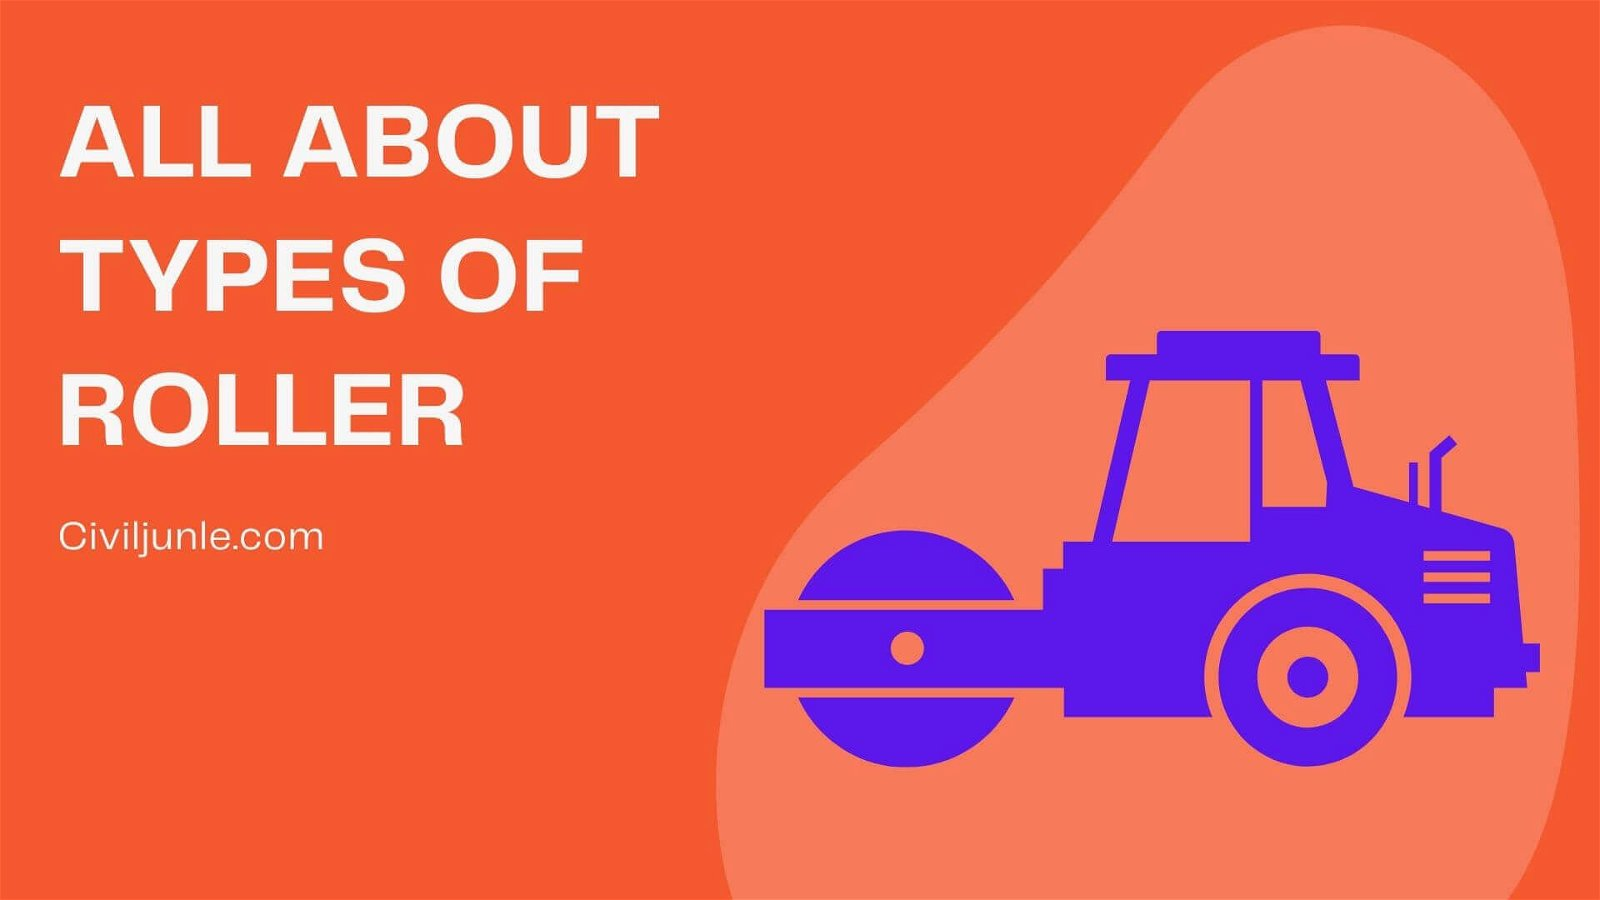 All About Types of Roller